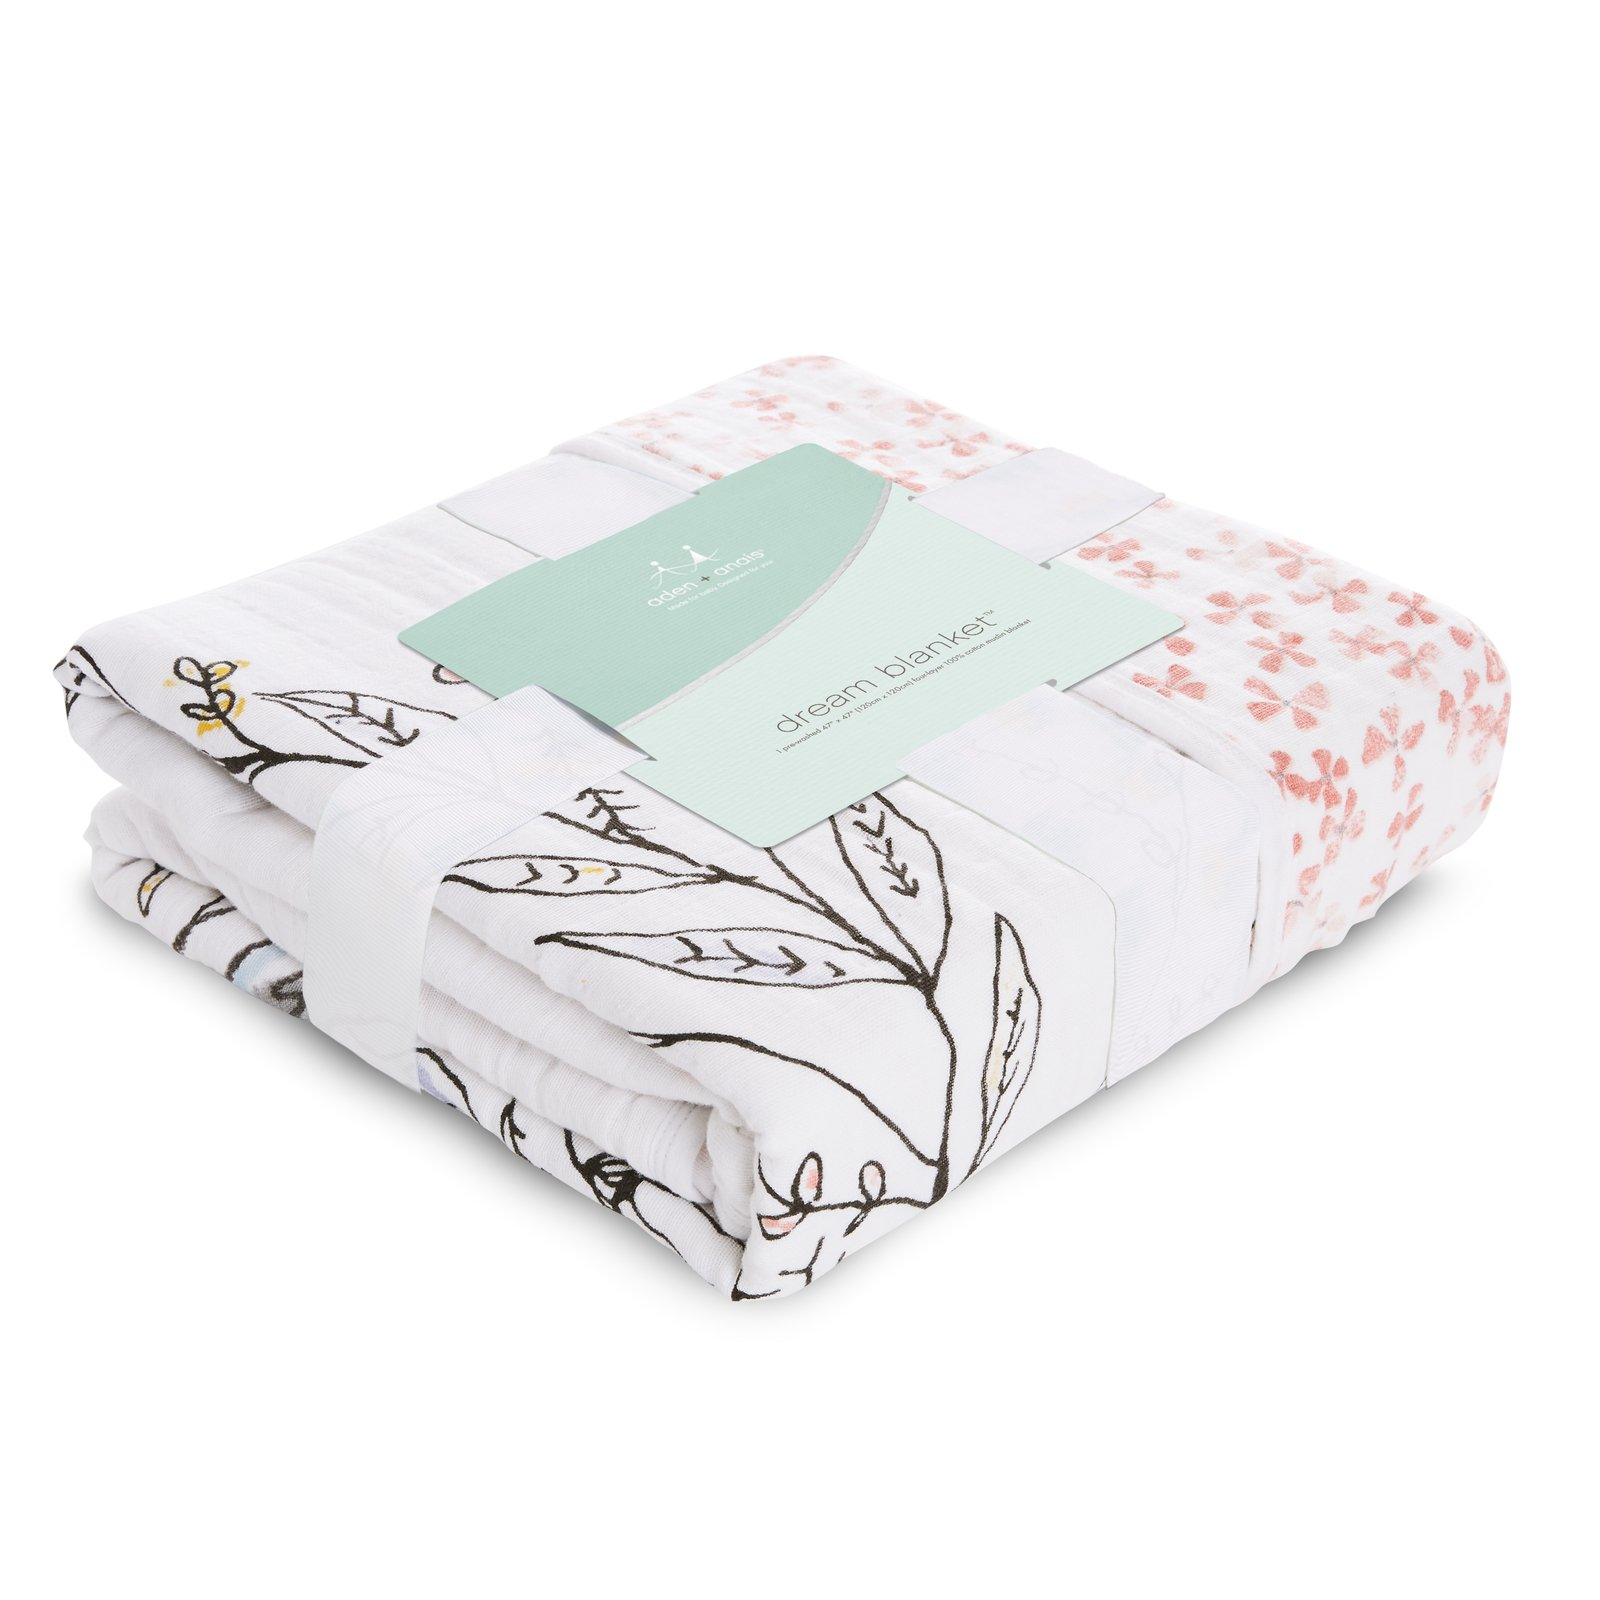 aden + anais Dream Blanket; 100% Cotton Muslin; 4 Layer lightweight and breathable; Large 47 X 47 inch; birdsong - noble nest by aden + anais (Image #2)